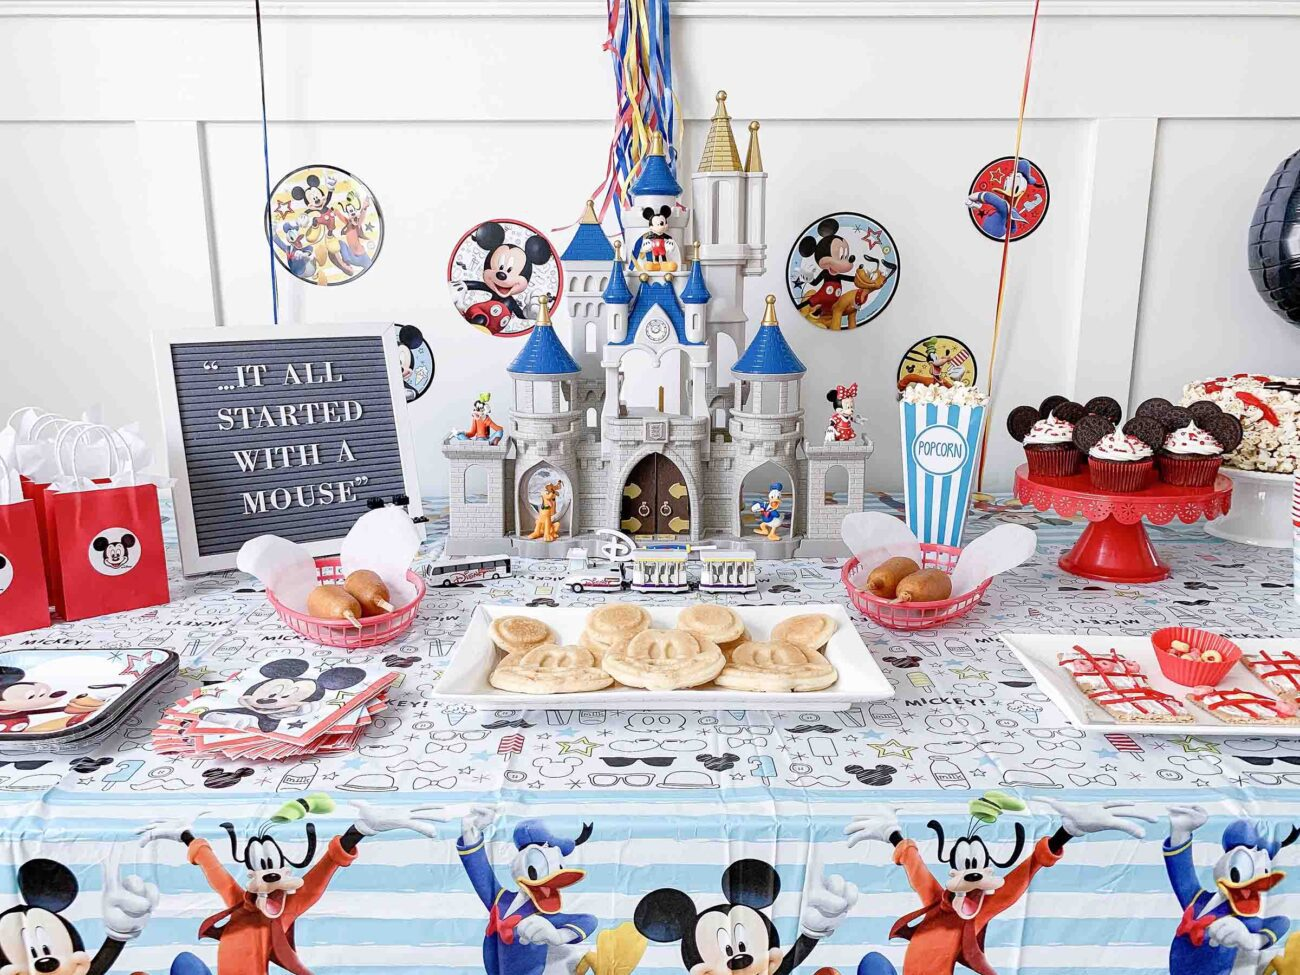 Are you looking to throw your kids the best Disney theme party ever? If so, you have to check out our list of the best ideas to make you party magical!